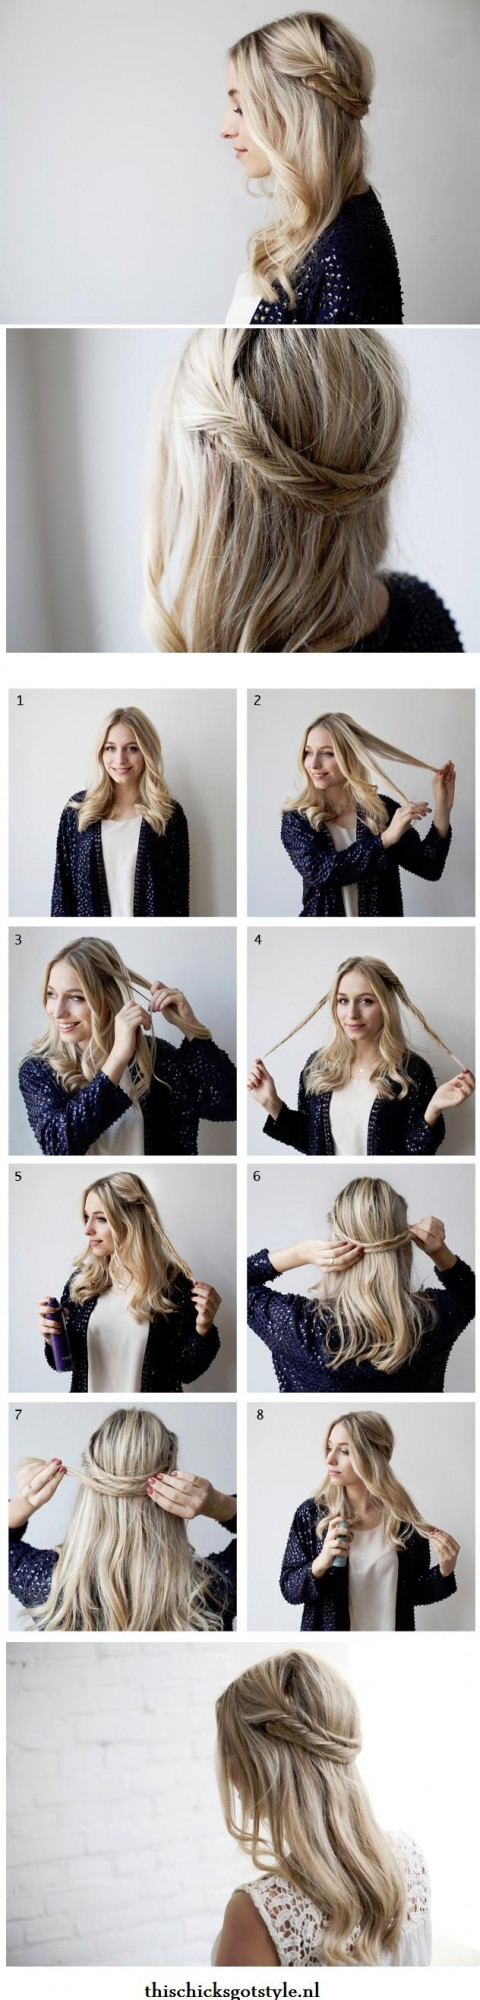 19 Great Tutorials for Perfect Hairstyles (12)